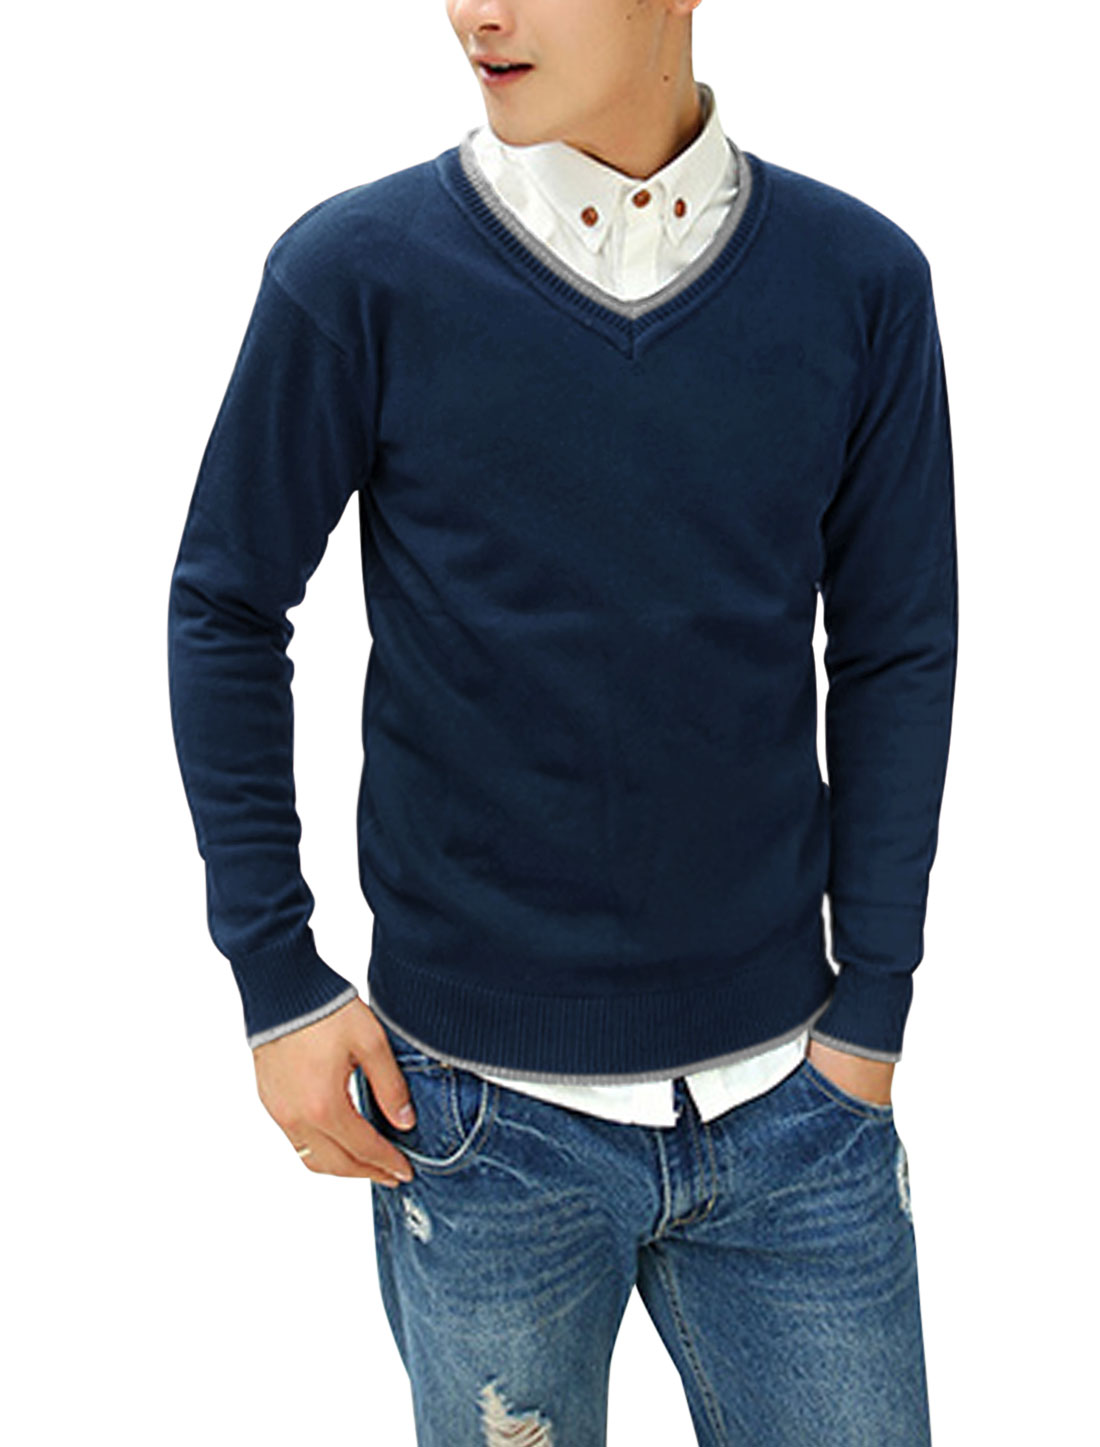 Men V Neck Contrast Collar Patched Detail Casual Cozy Fit Sweater Navy Blue M